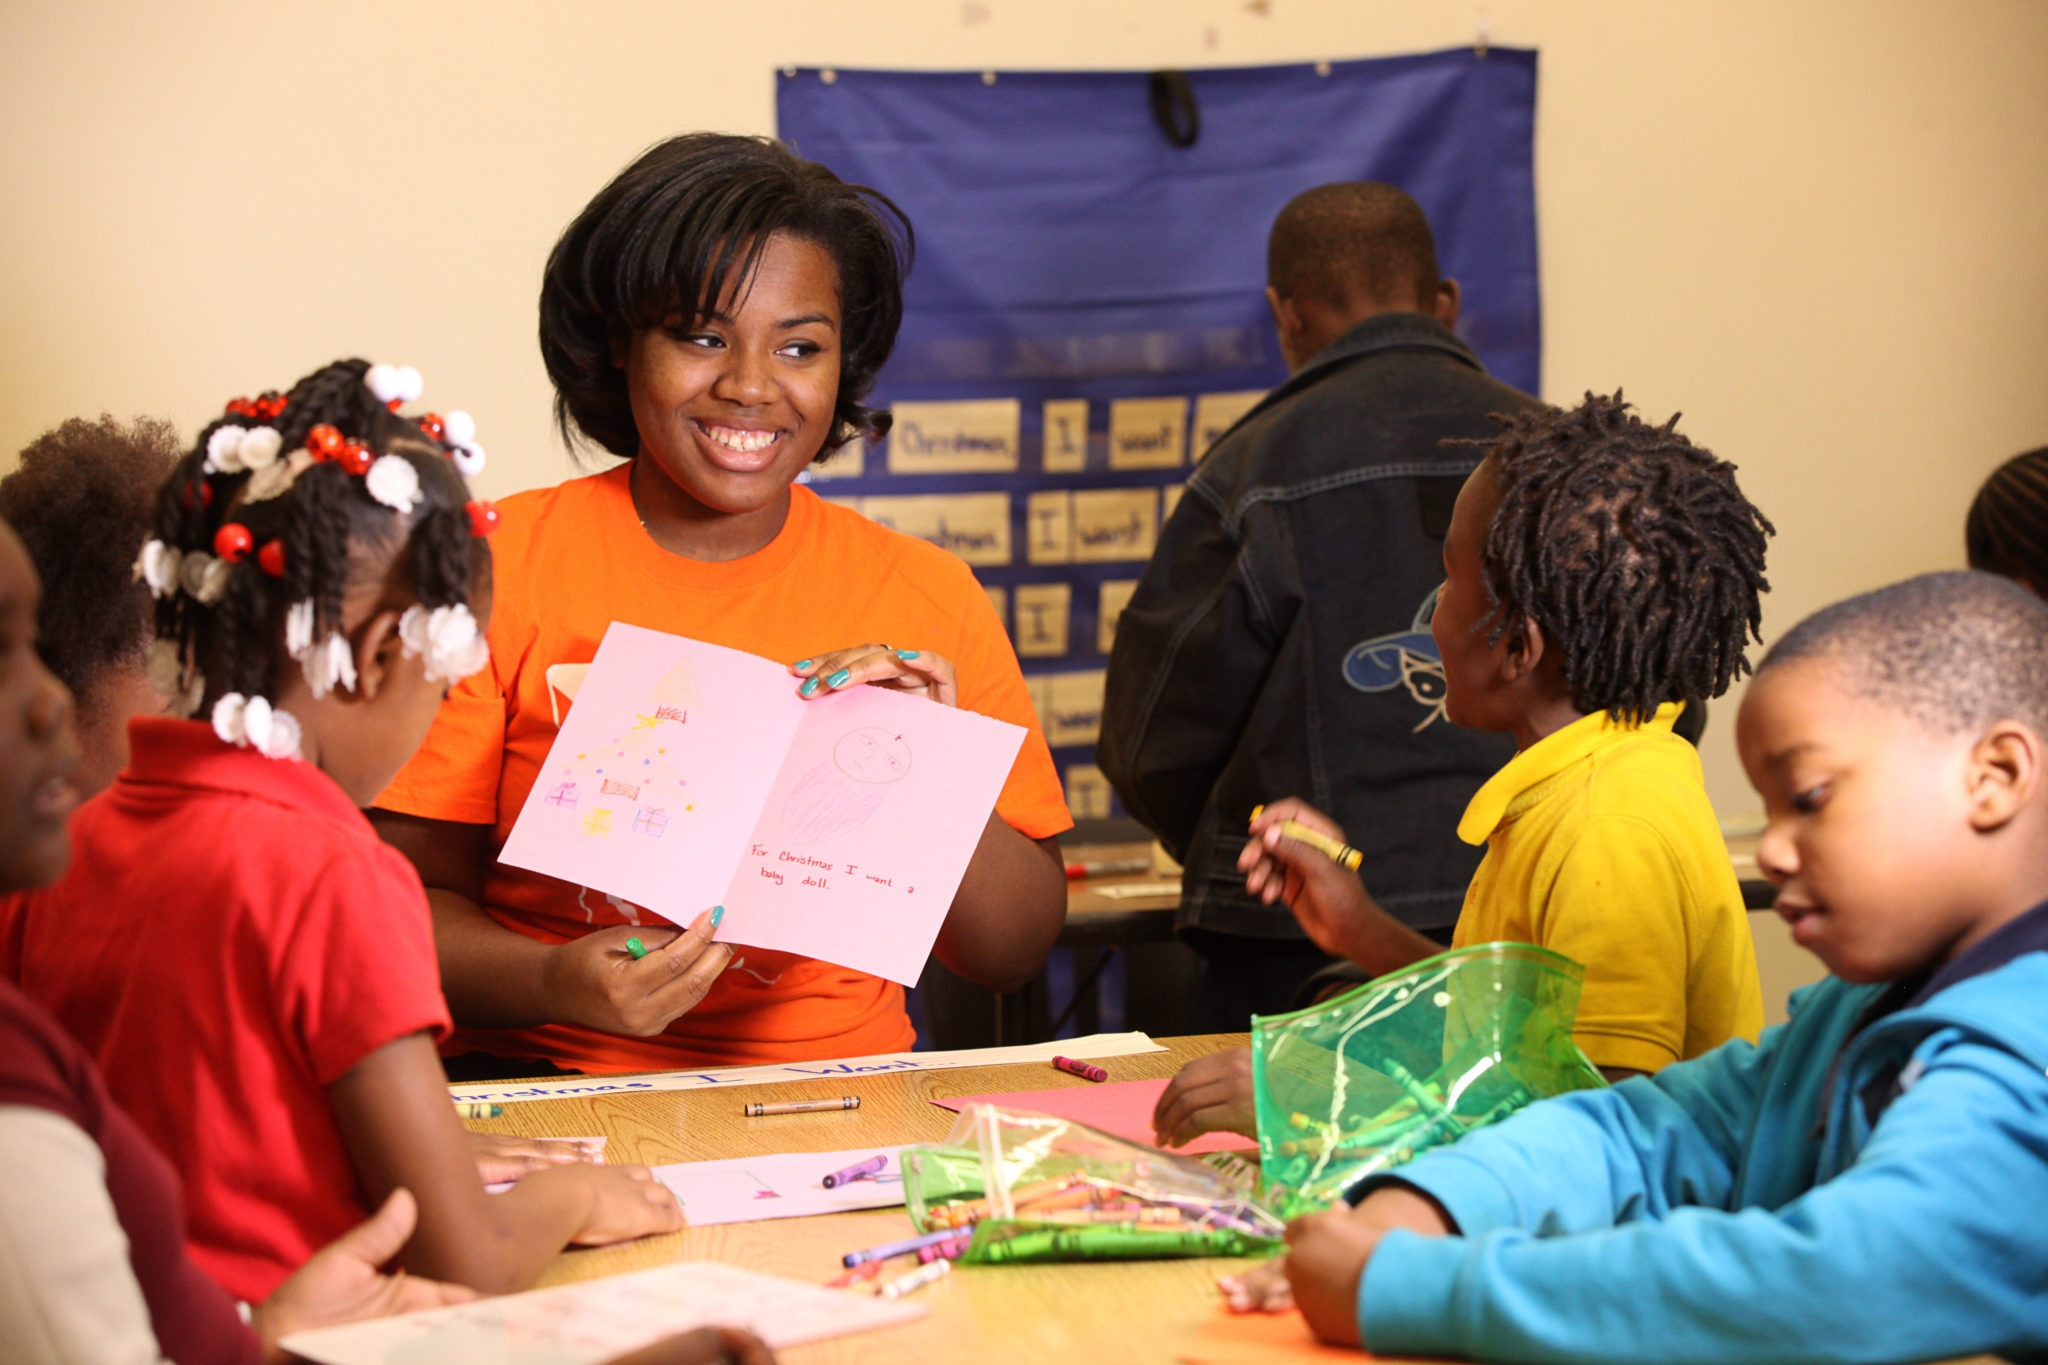 A Mercer University student works with young children to help improve reading scores.